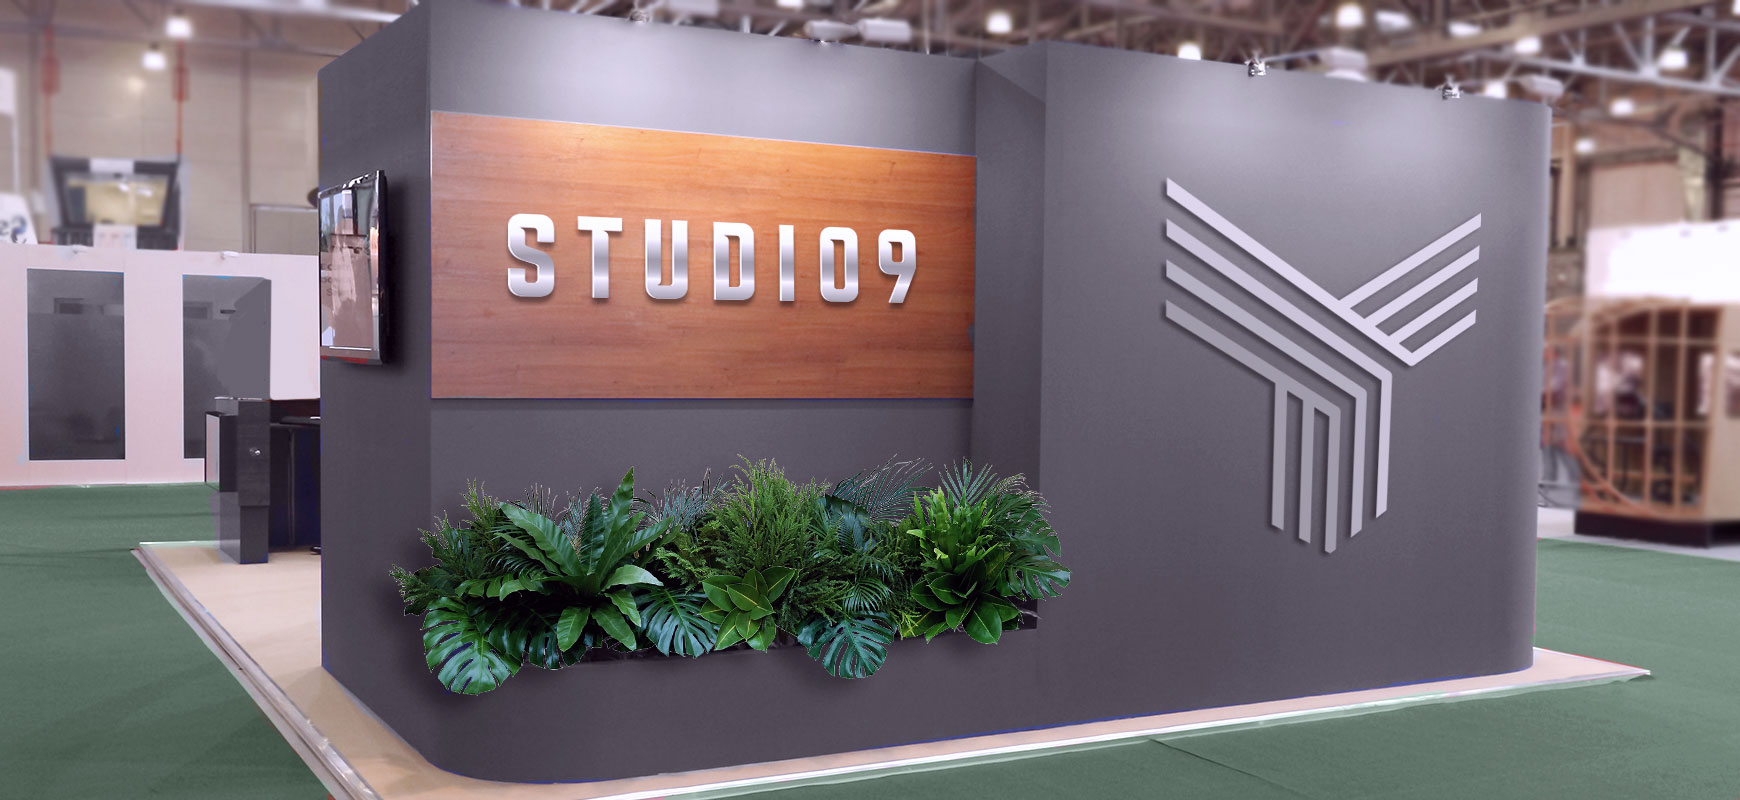 Moscow-may,21:,American,Company,Sikorsky,Booth,At,The,4-th,International